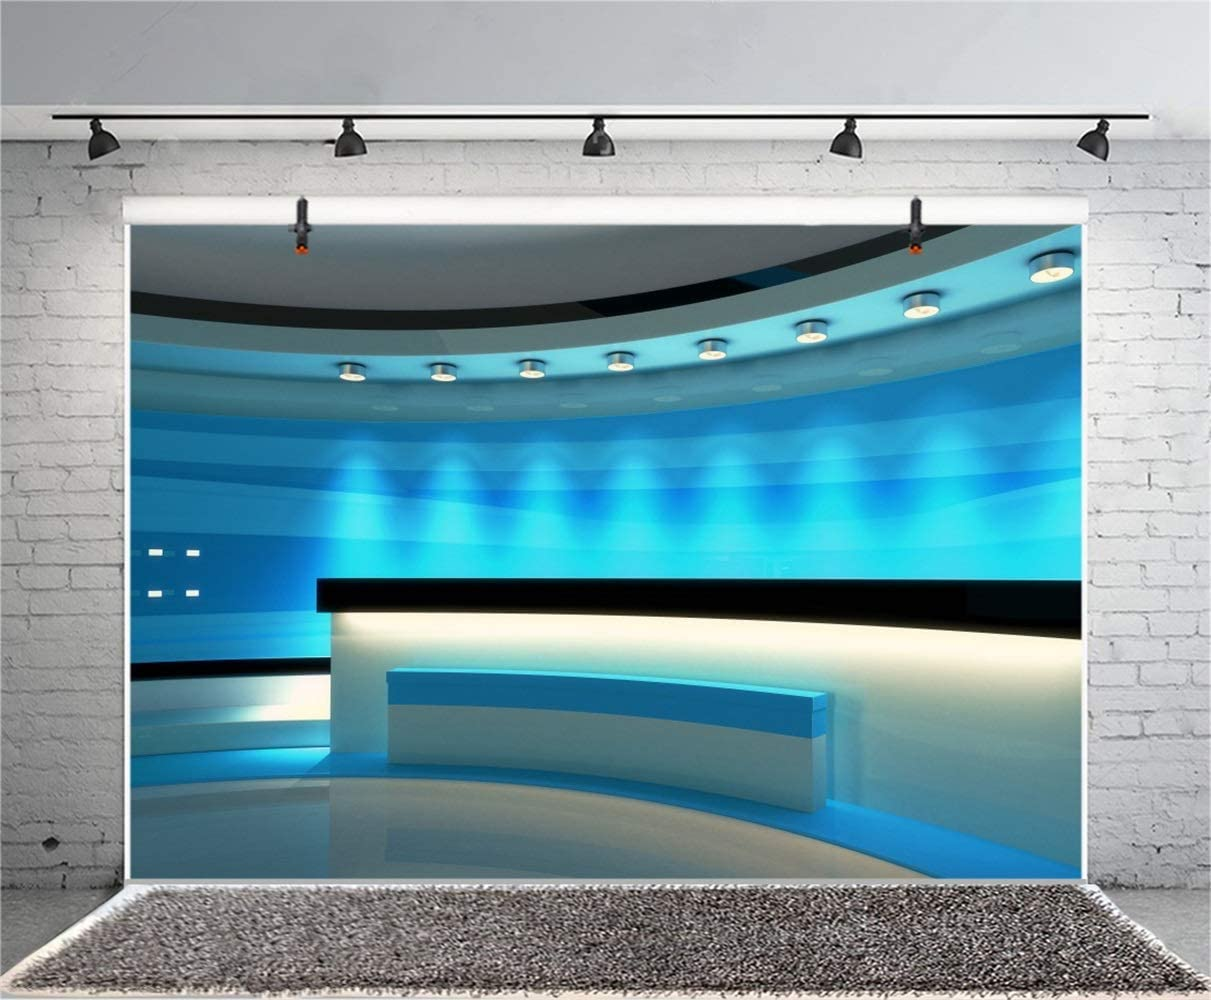 GoEoo Blue News Room Interior Backdrop Vinyl 10x7ft Round Broadcasting Room Long Platform Bright Spotlight Background TV Station Programing University Academic Report Live Video Record Show Banner